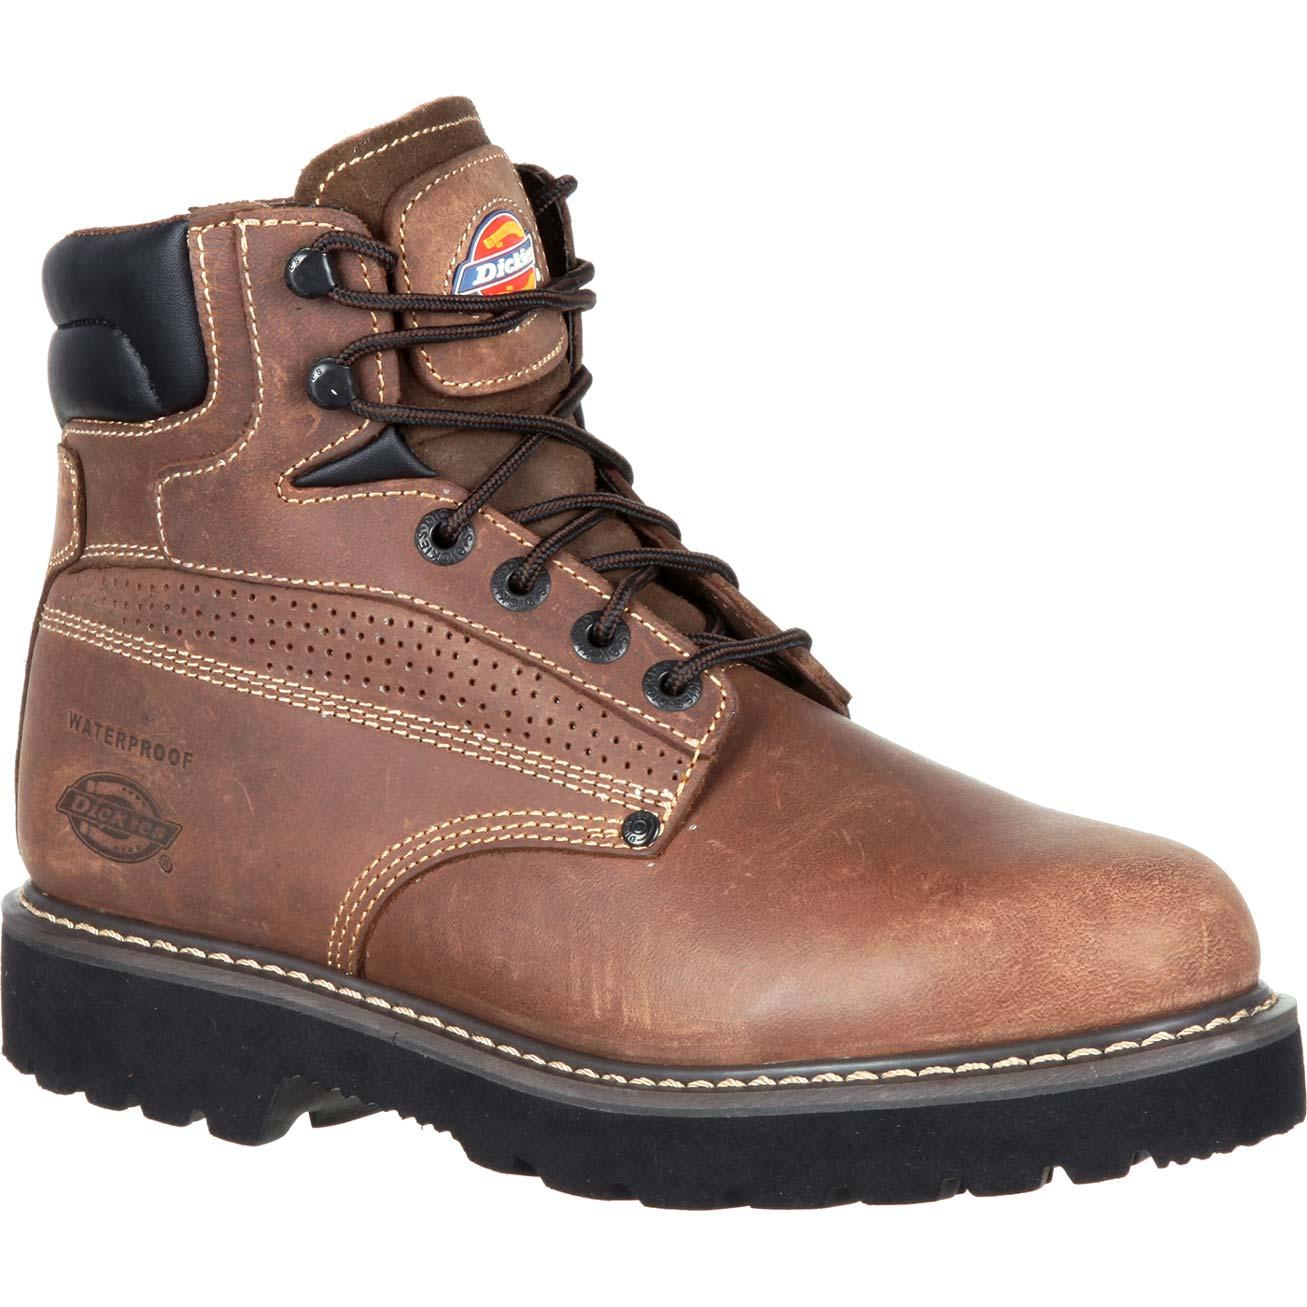 Dickies Breaker Steel Toe Work Boot Dps712